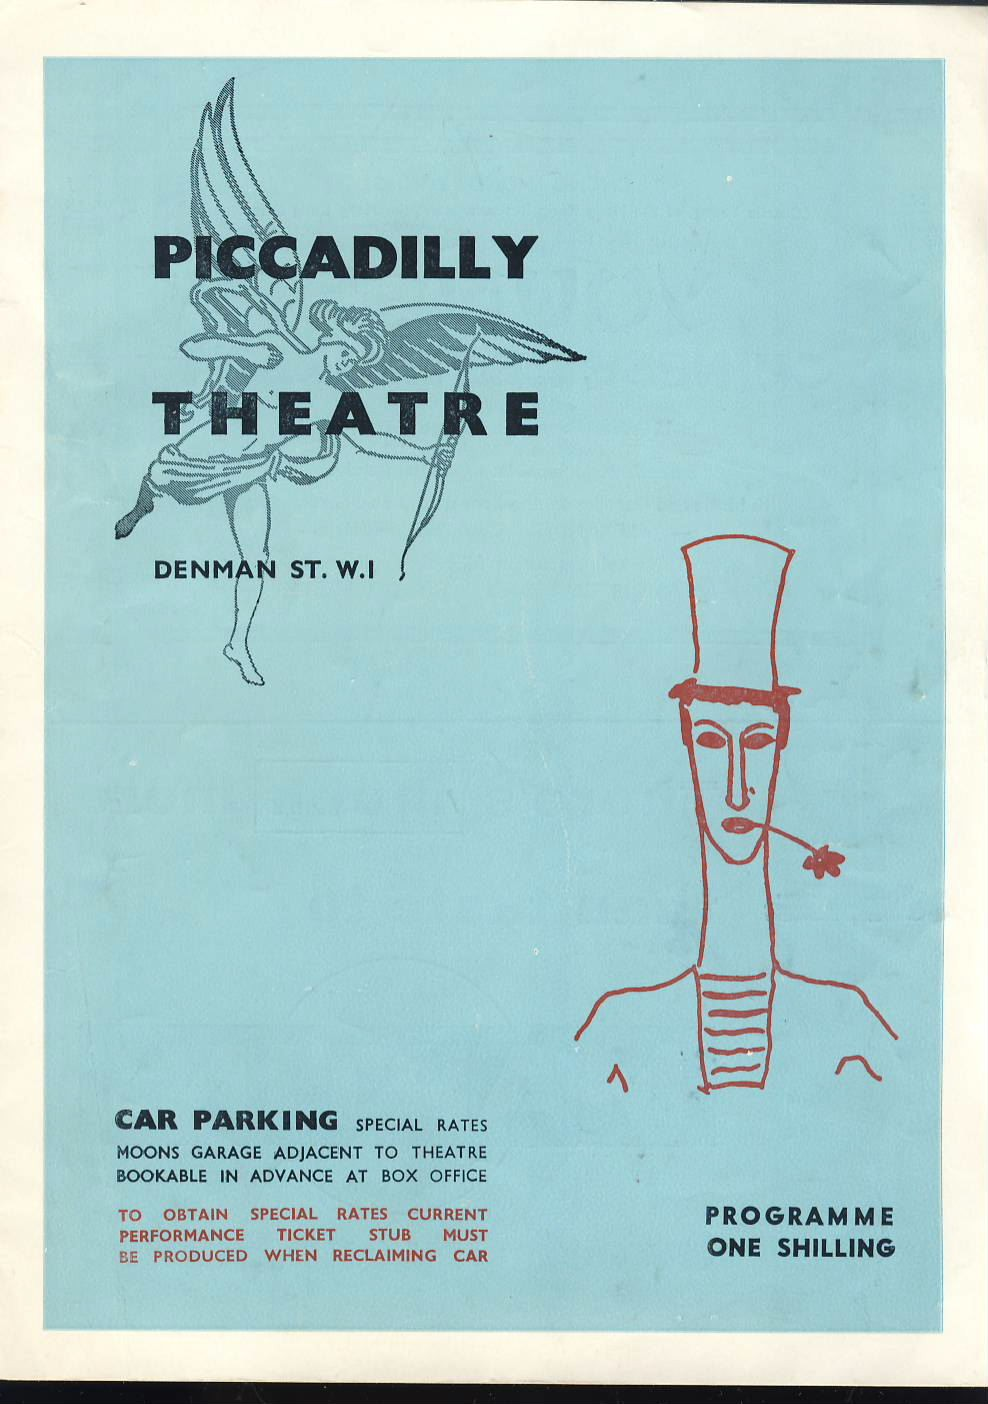 Bip De Garage 1962 Piccadillly Theatre Marcel Marceau Exercised De Style And Pantomimes Programme C449